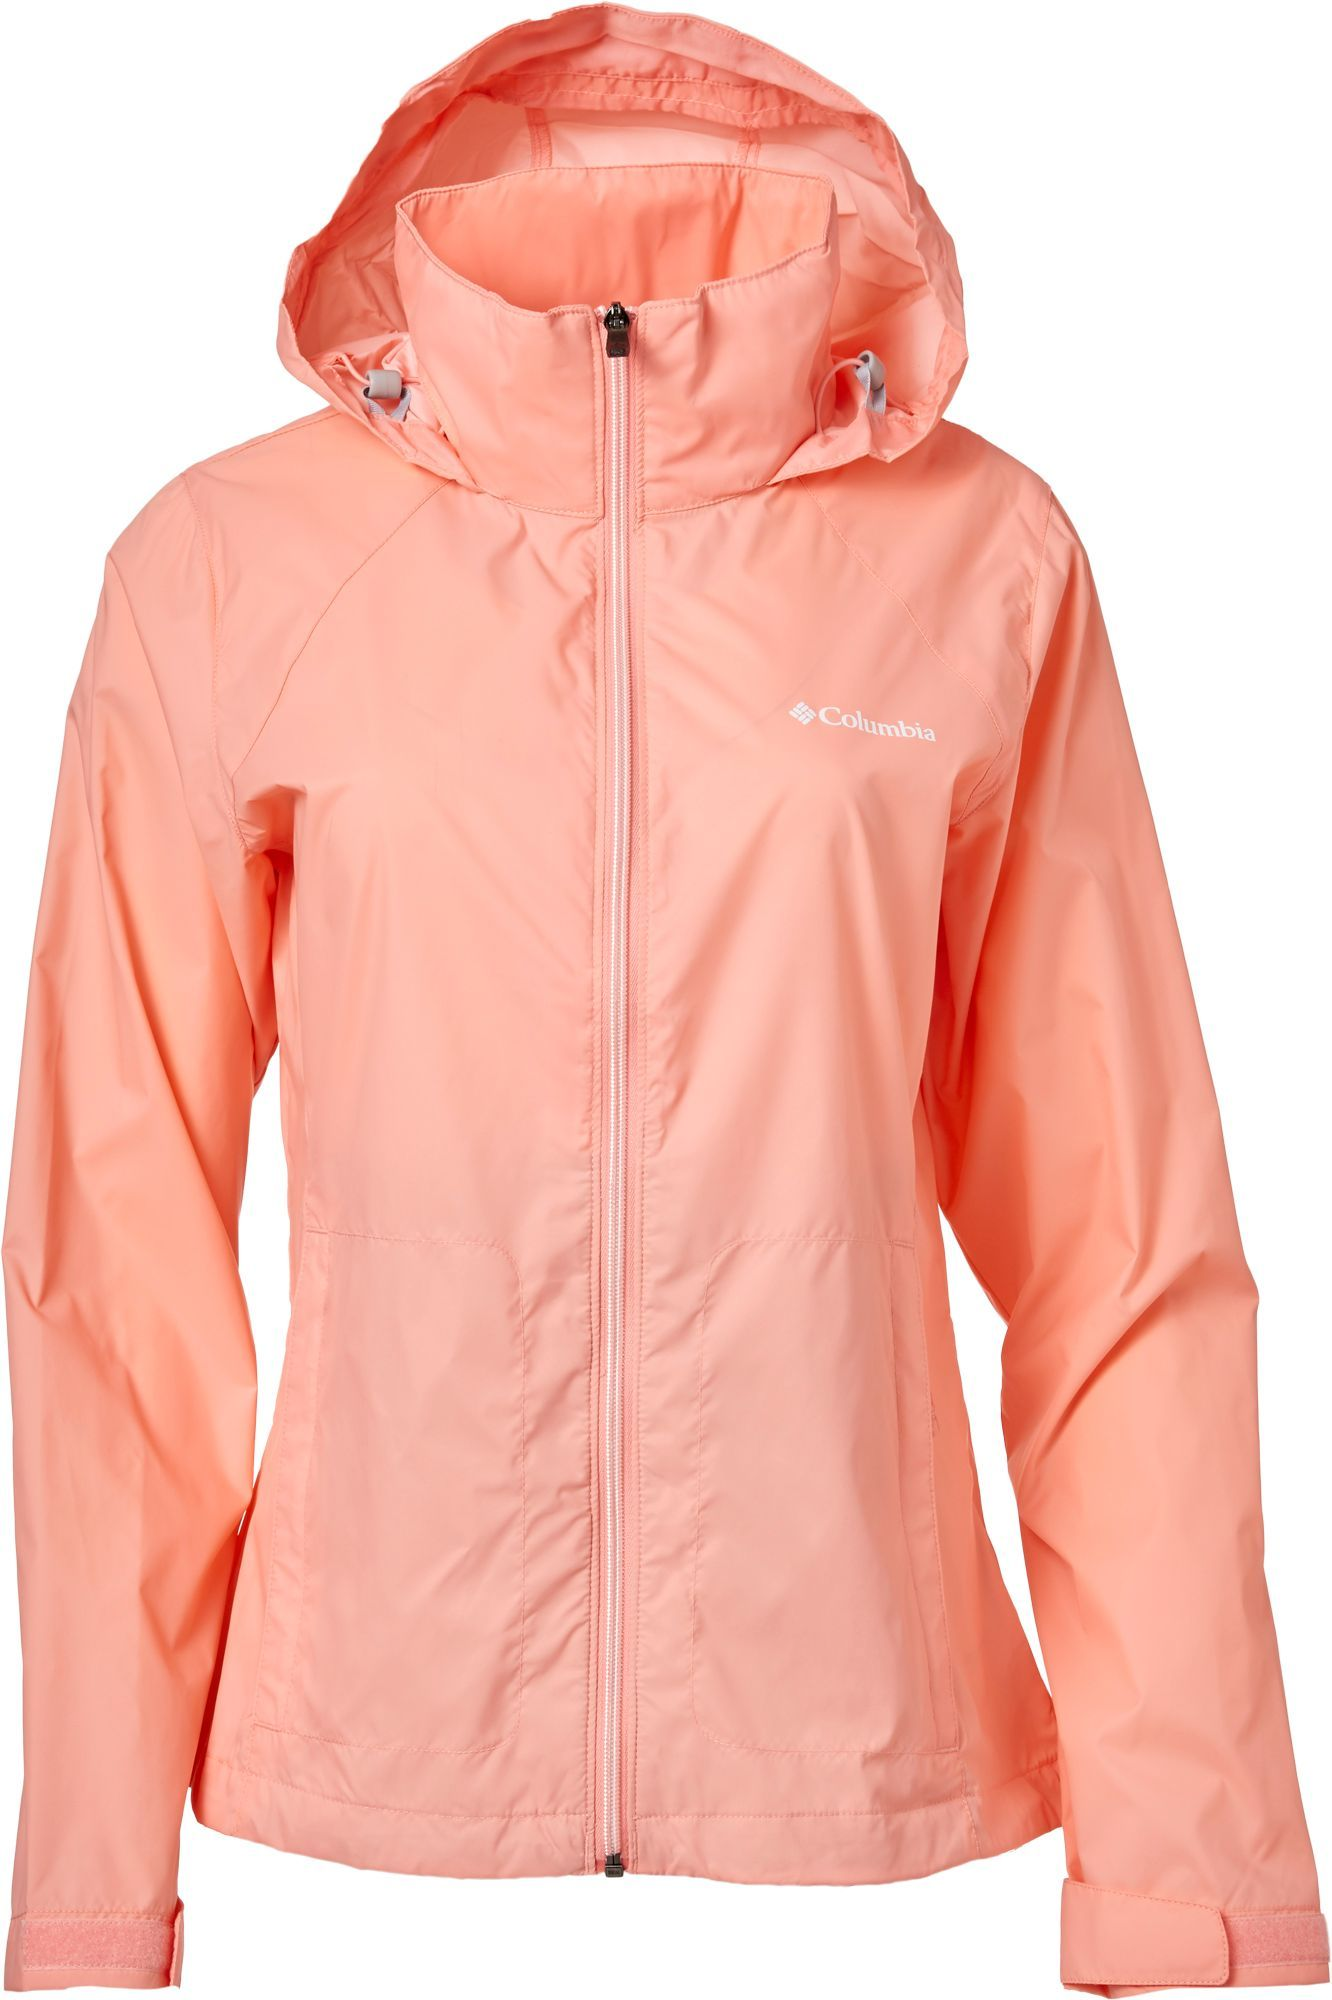 15233af93ee Columbia Women s Switchback Rain Jacket